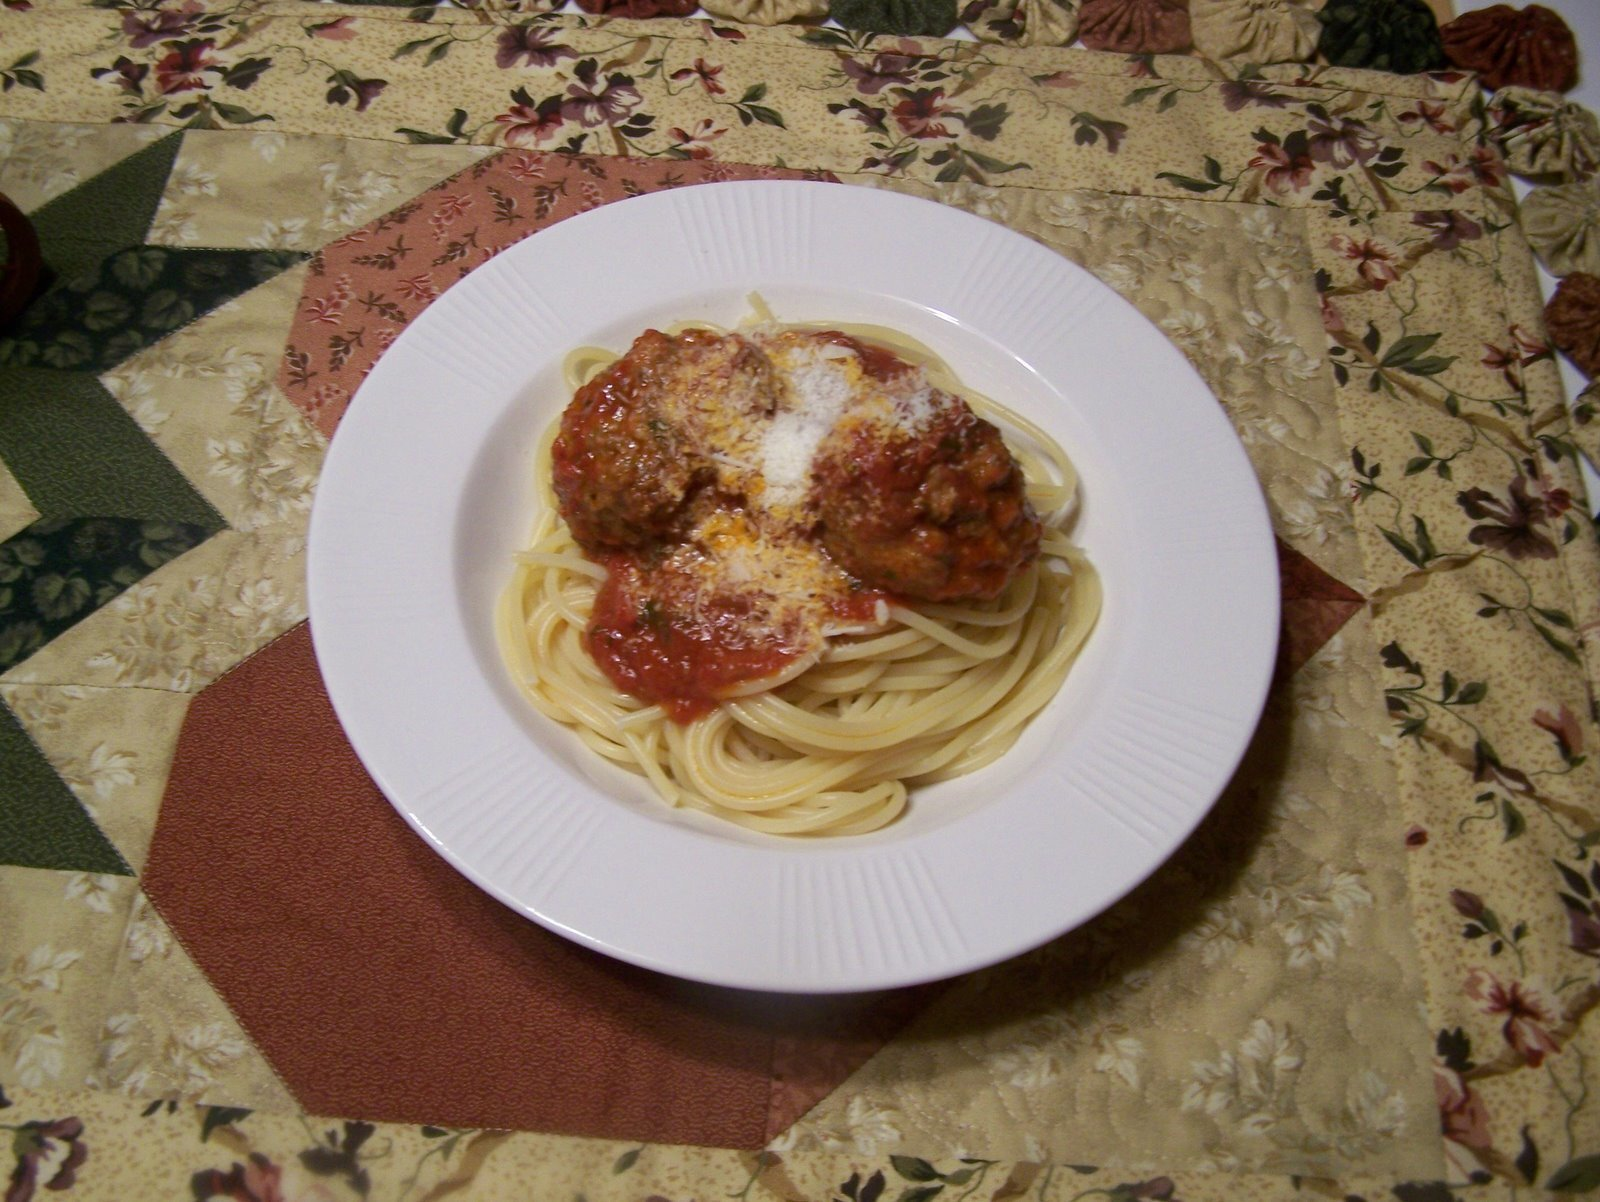 Meatballs and Spaghetti the Barefoot Contessa Way and Stuffed Artichokes